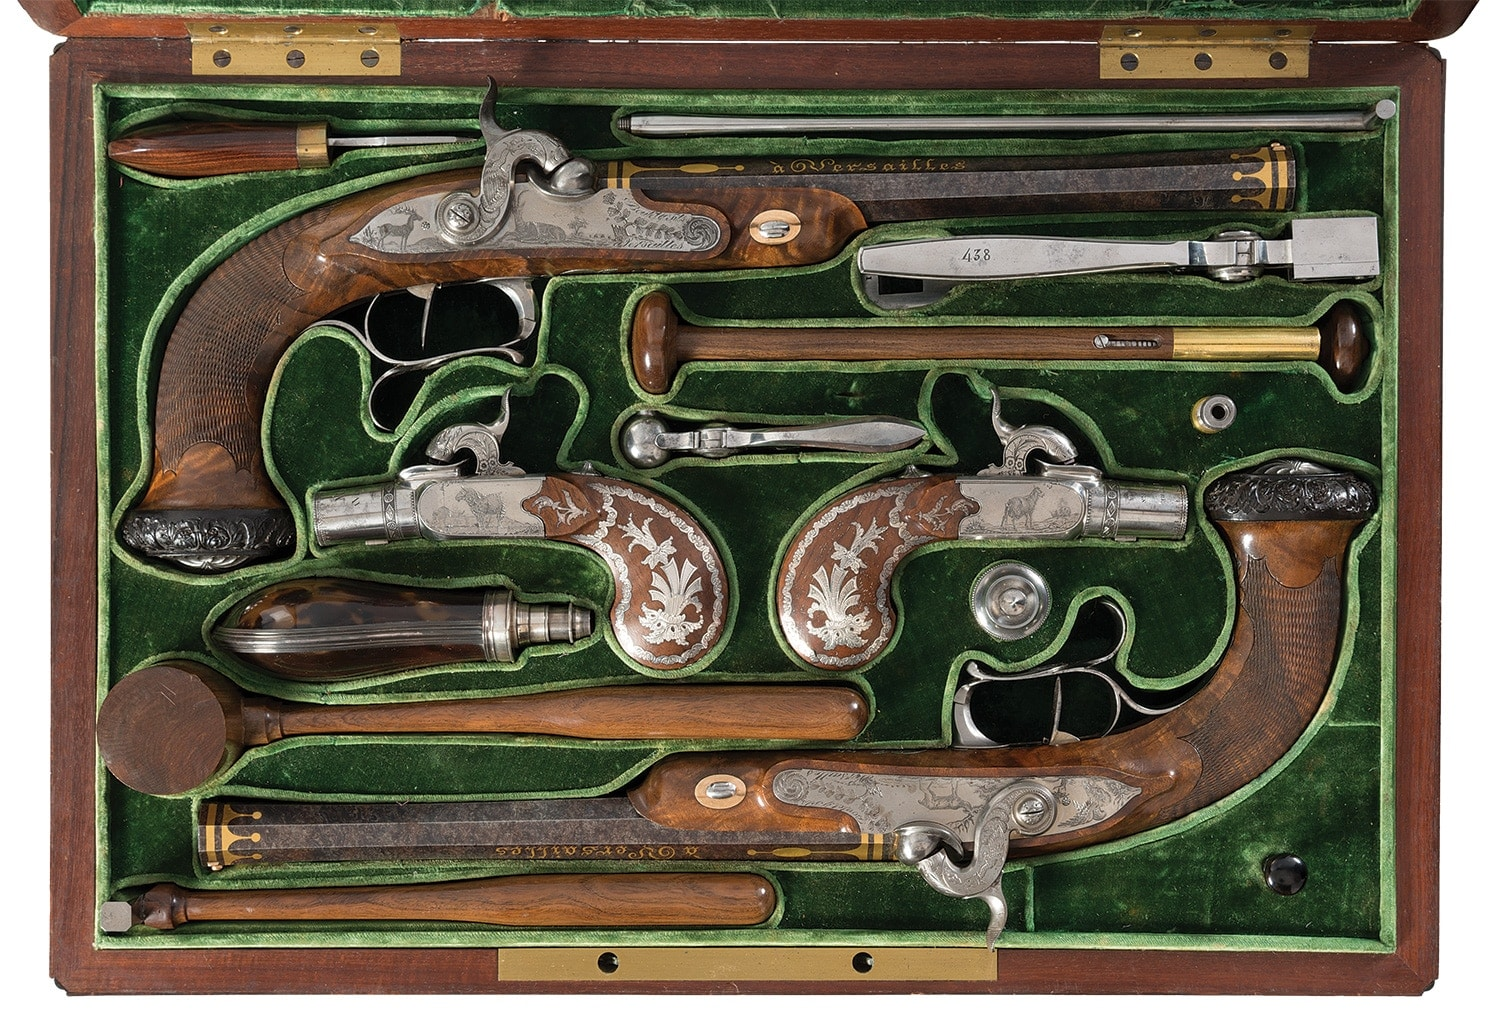 Exhibition Quality Gold Inlaid and Engraved Cased Four Gun Garniture by Renowned Maker Nicolas Noel Boutet